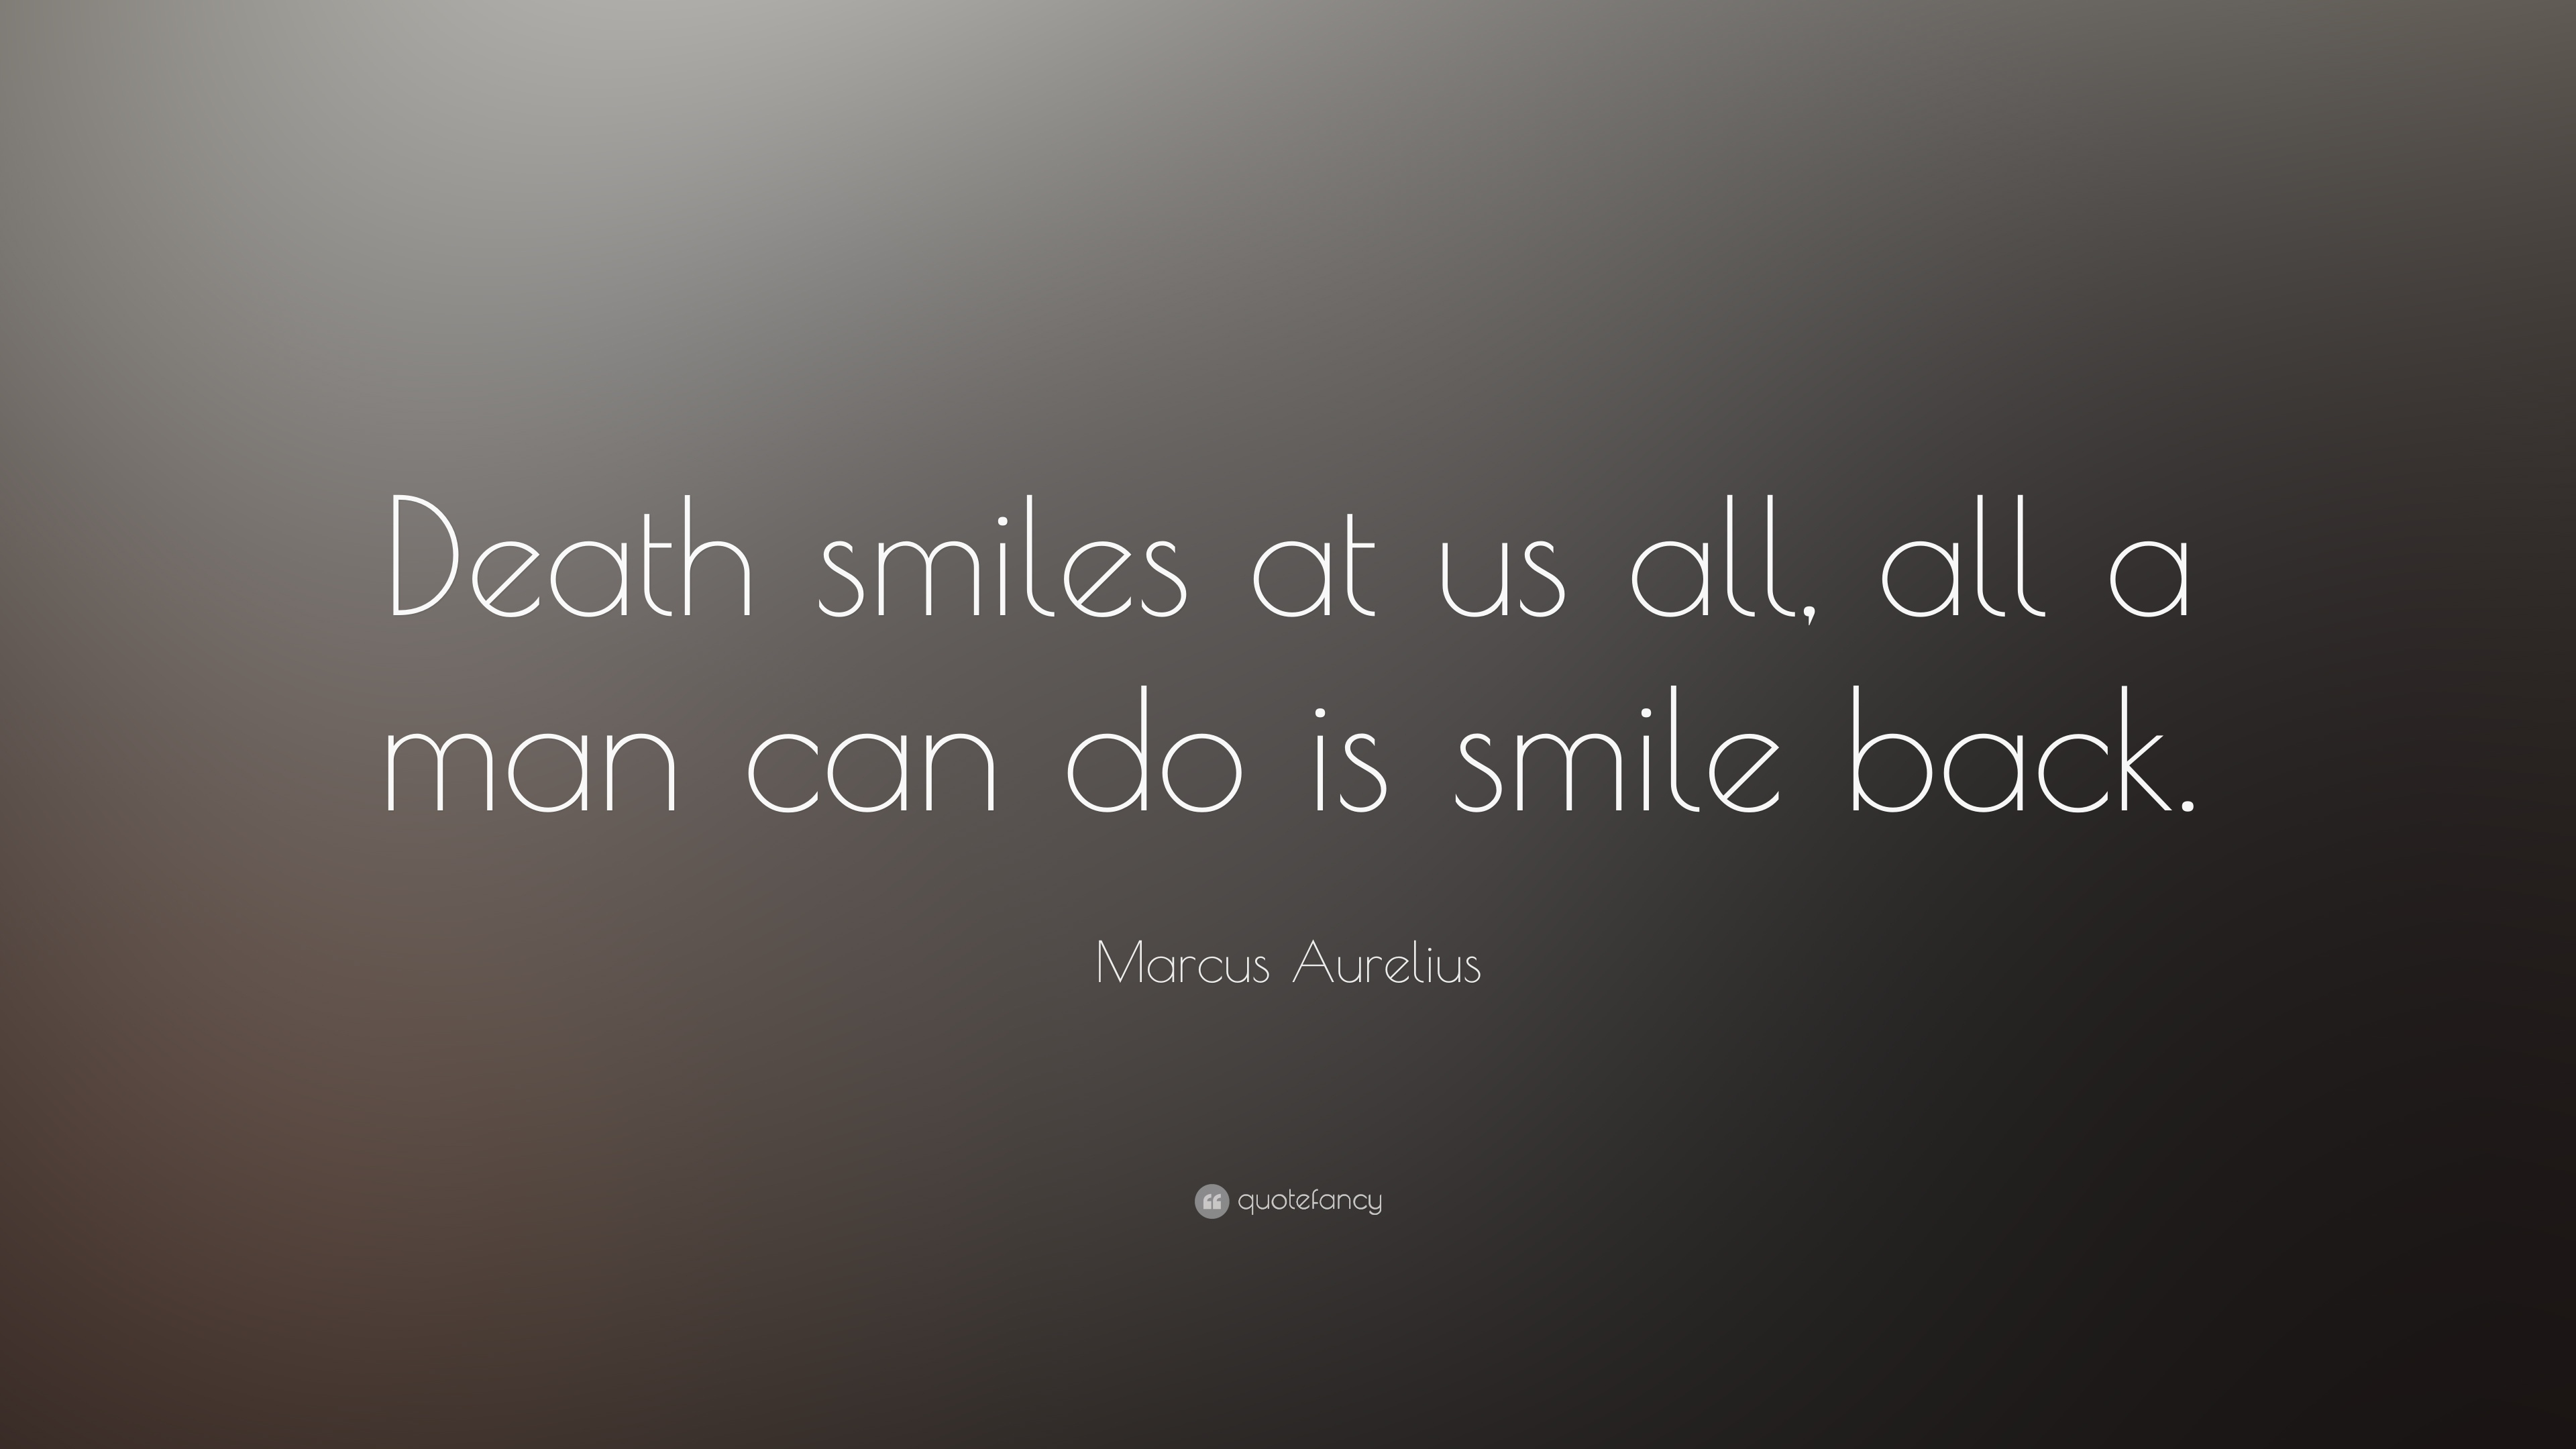 Dalai Lama Quotes Wallpapers Marcus Aurelius Quote Death Smiles At Us All All A Man